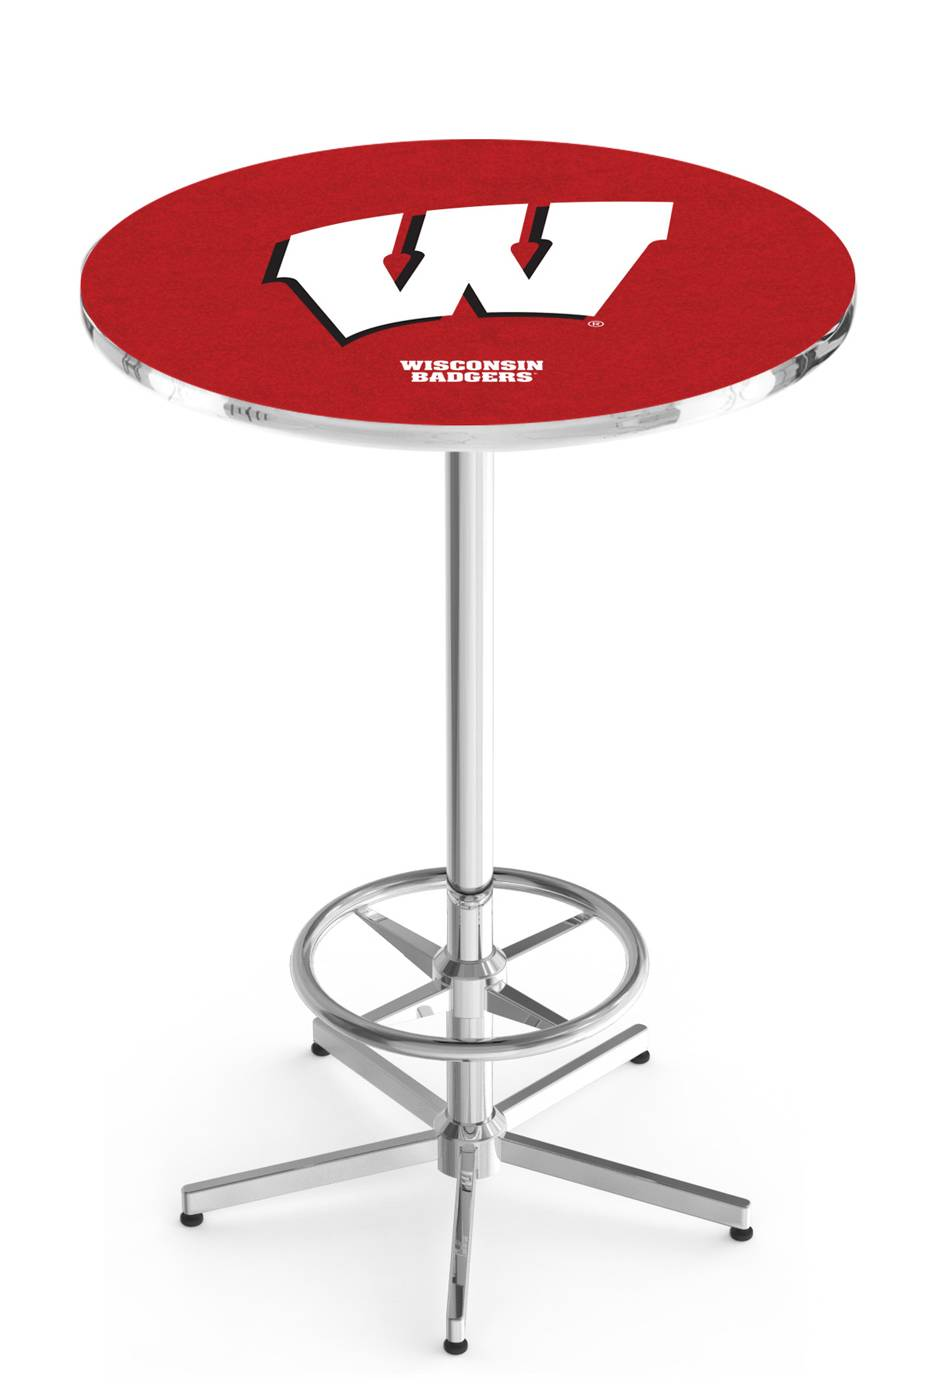 "Wisconsin Badgers ""W"" Chrome Bar Table with Foot Ring"